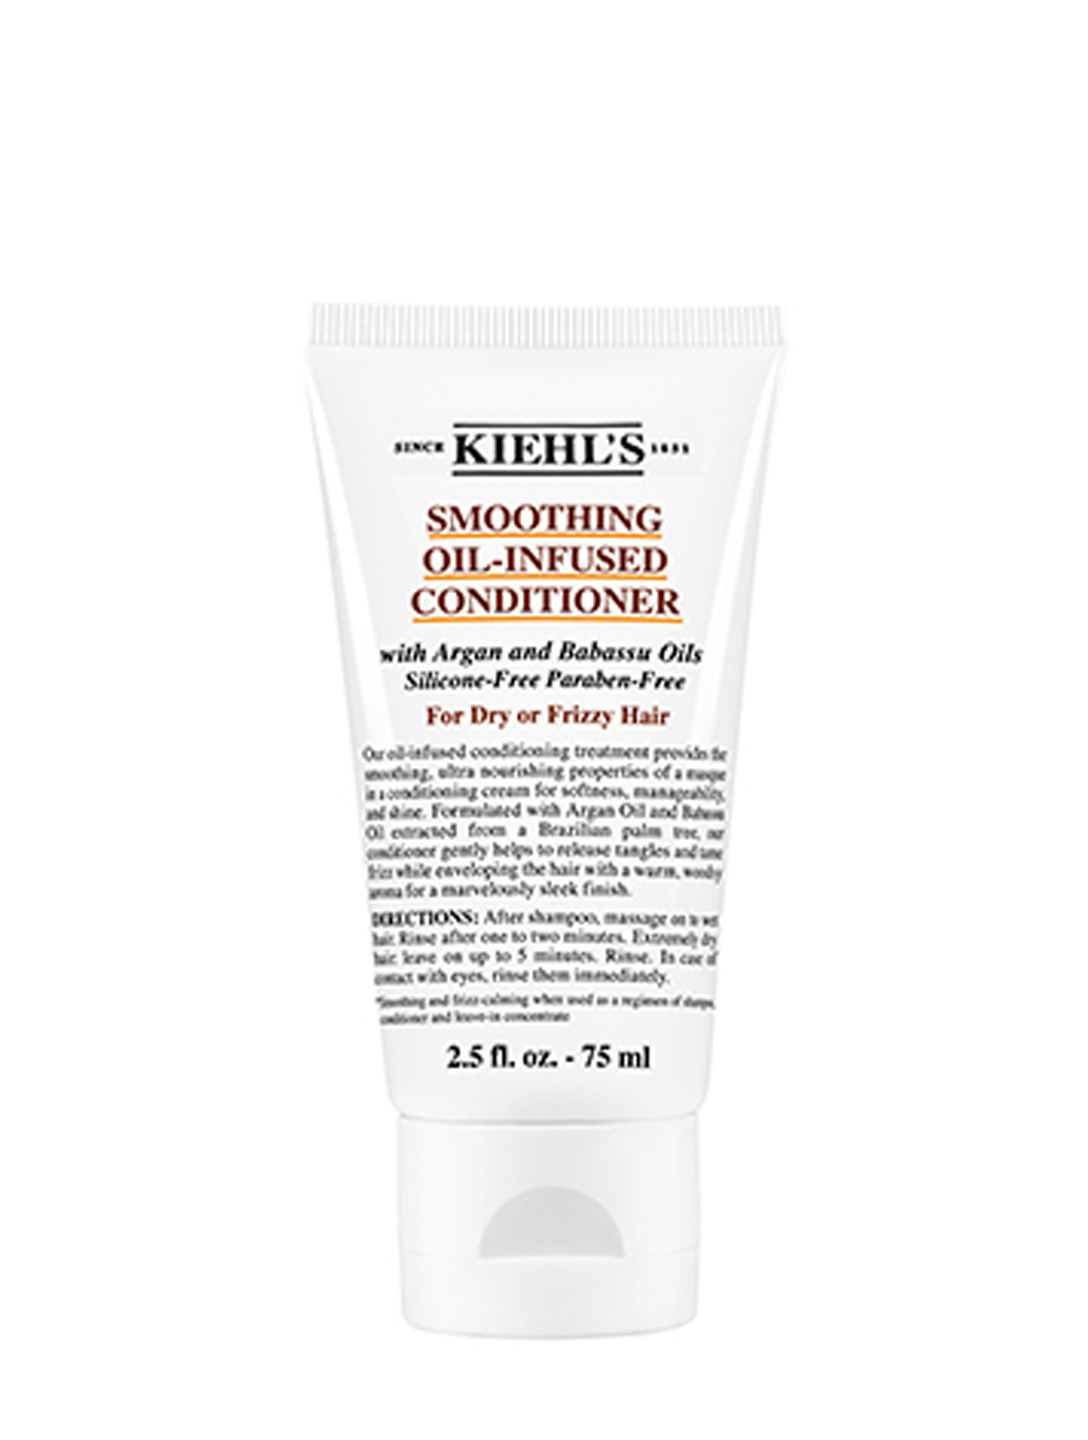 KIEHL'S Smoothing Oil-Infused Conditioner Beauty